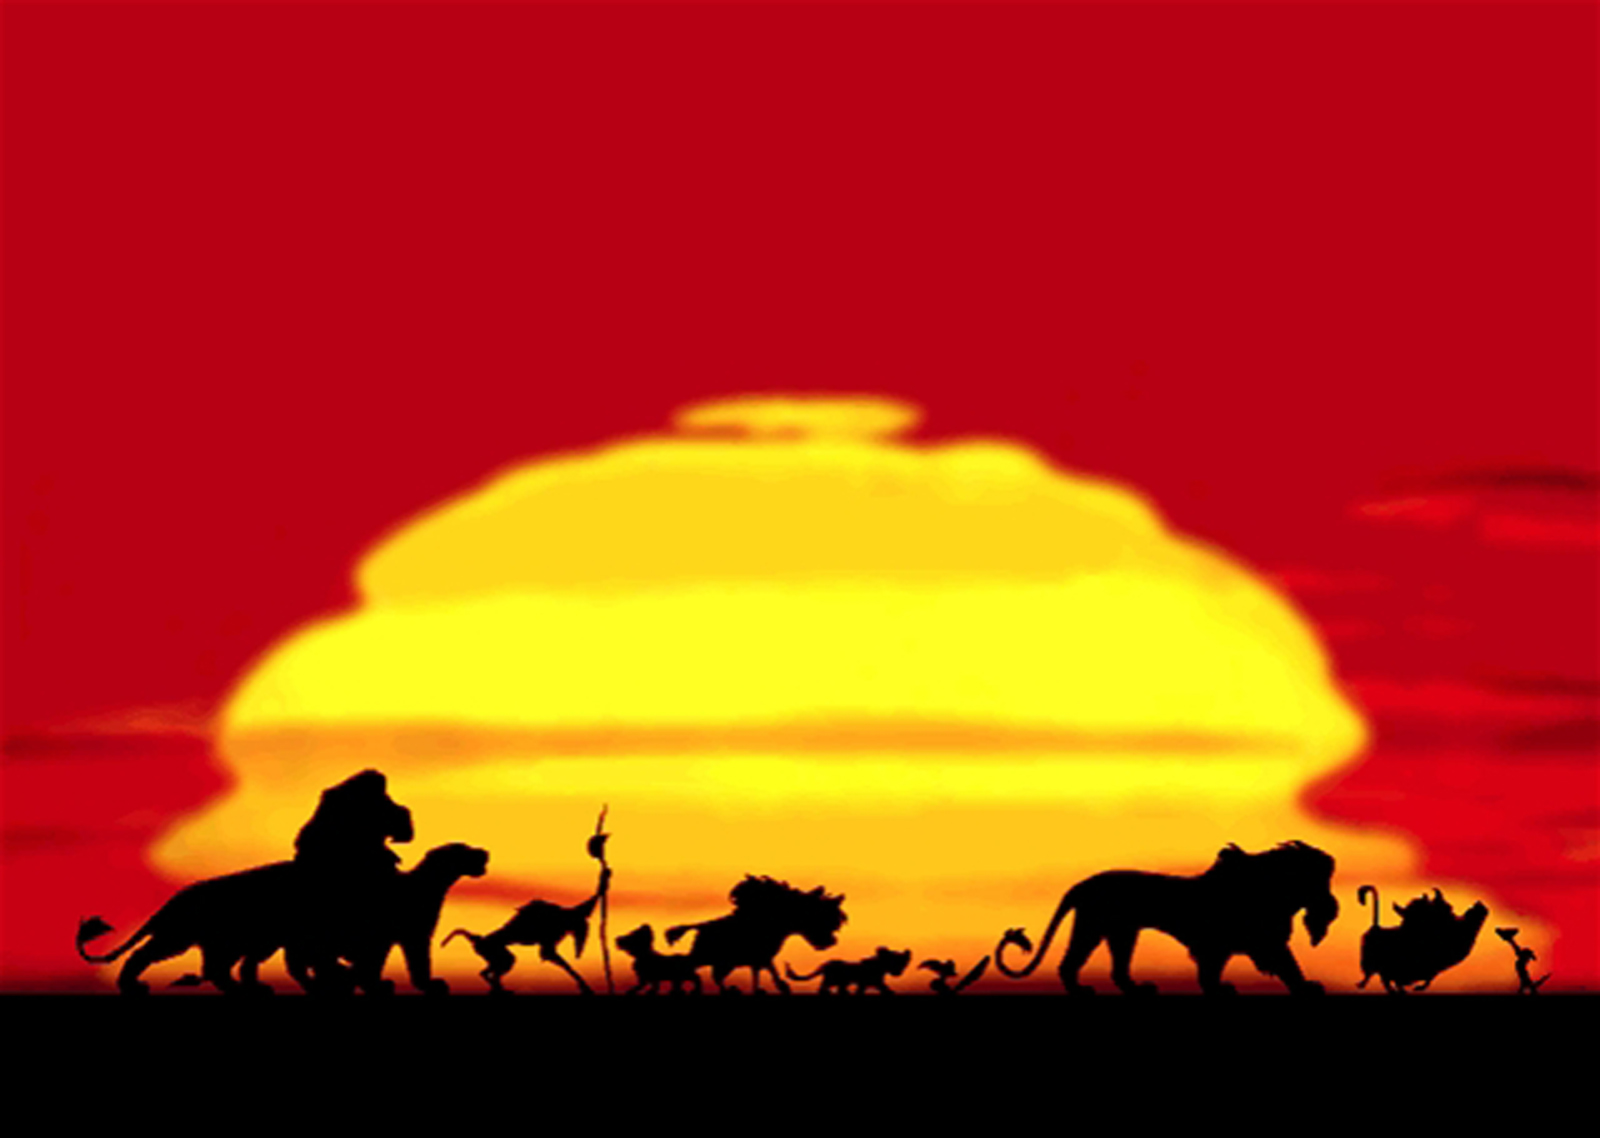 http://4.bp.blogspot.com/-RuWPIVXN3Fs/TnZ7NfY3sEI/AAAAAAAABI4/DBCdCDVwkcQ/s1600/The_lion_king_sundown_hd_wallpapers_Vvallpaper.net.jpg